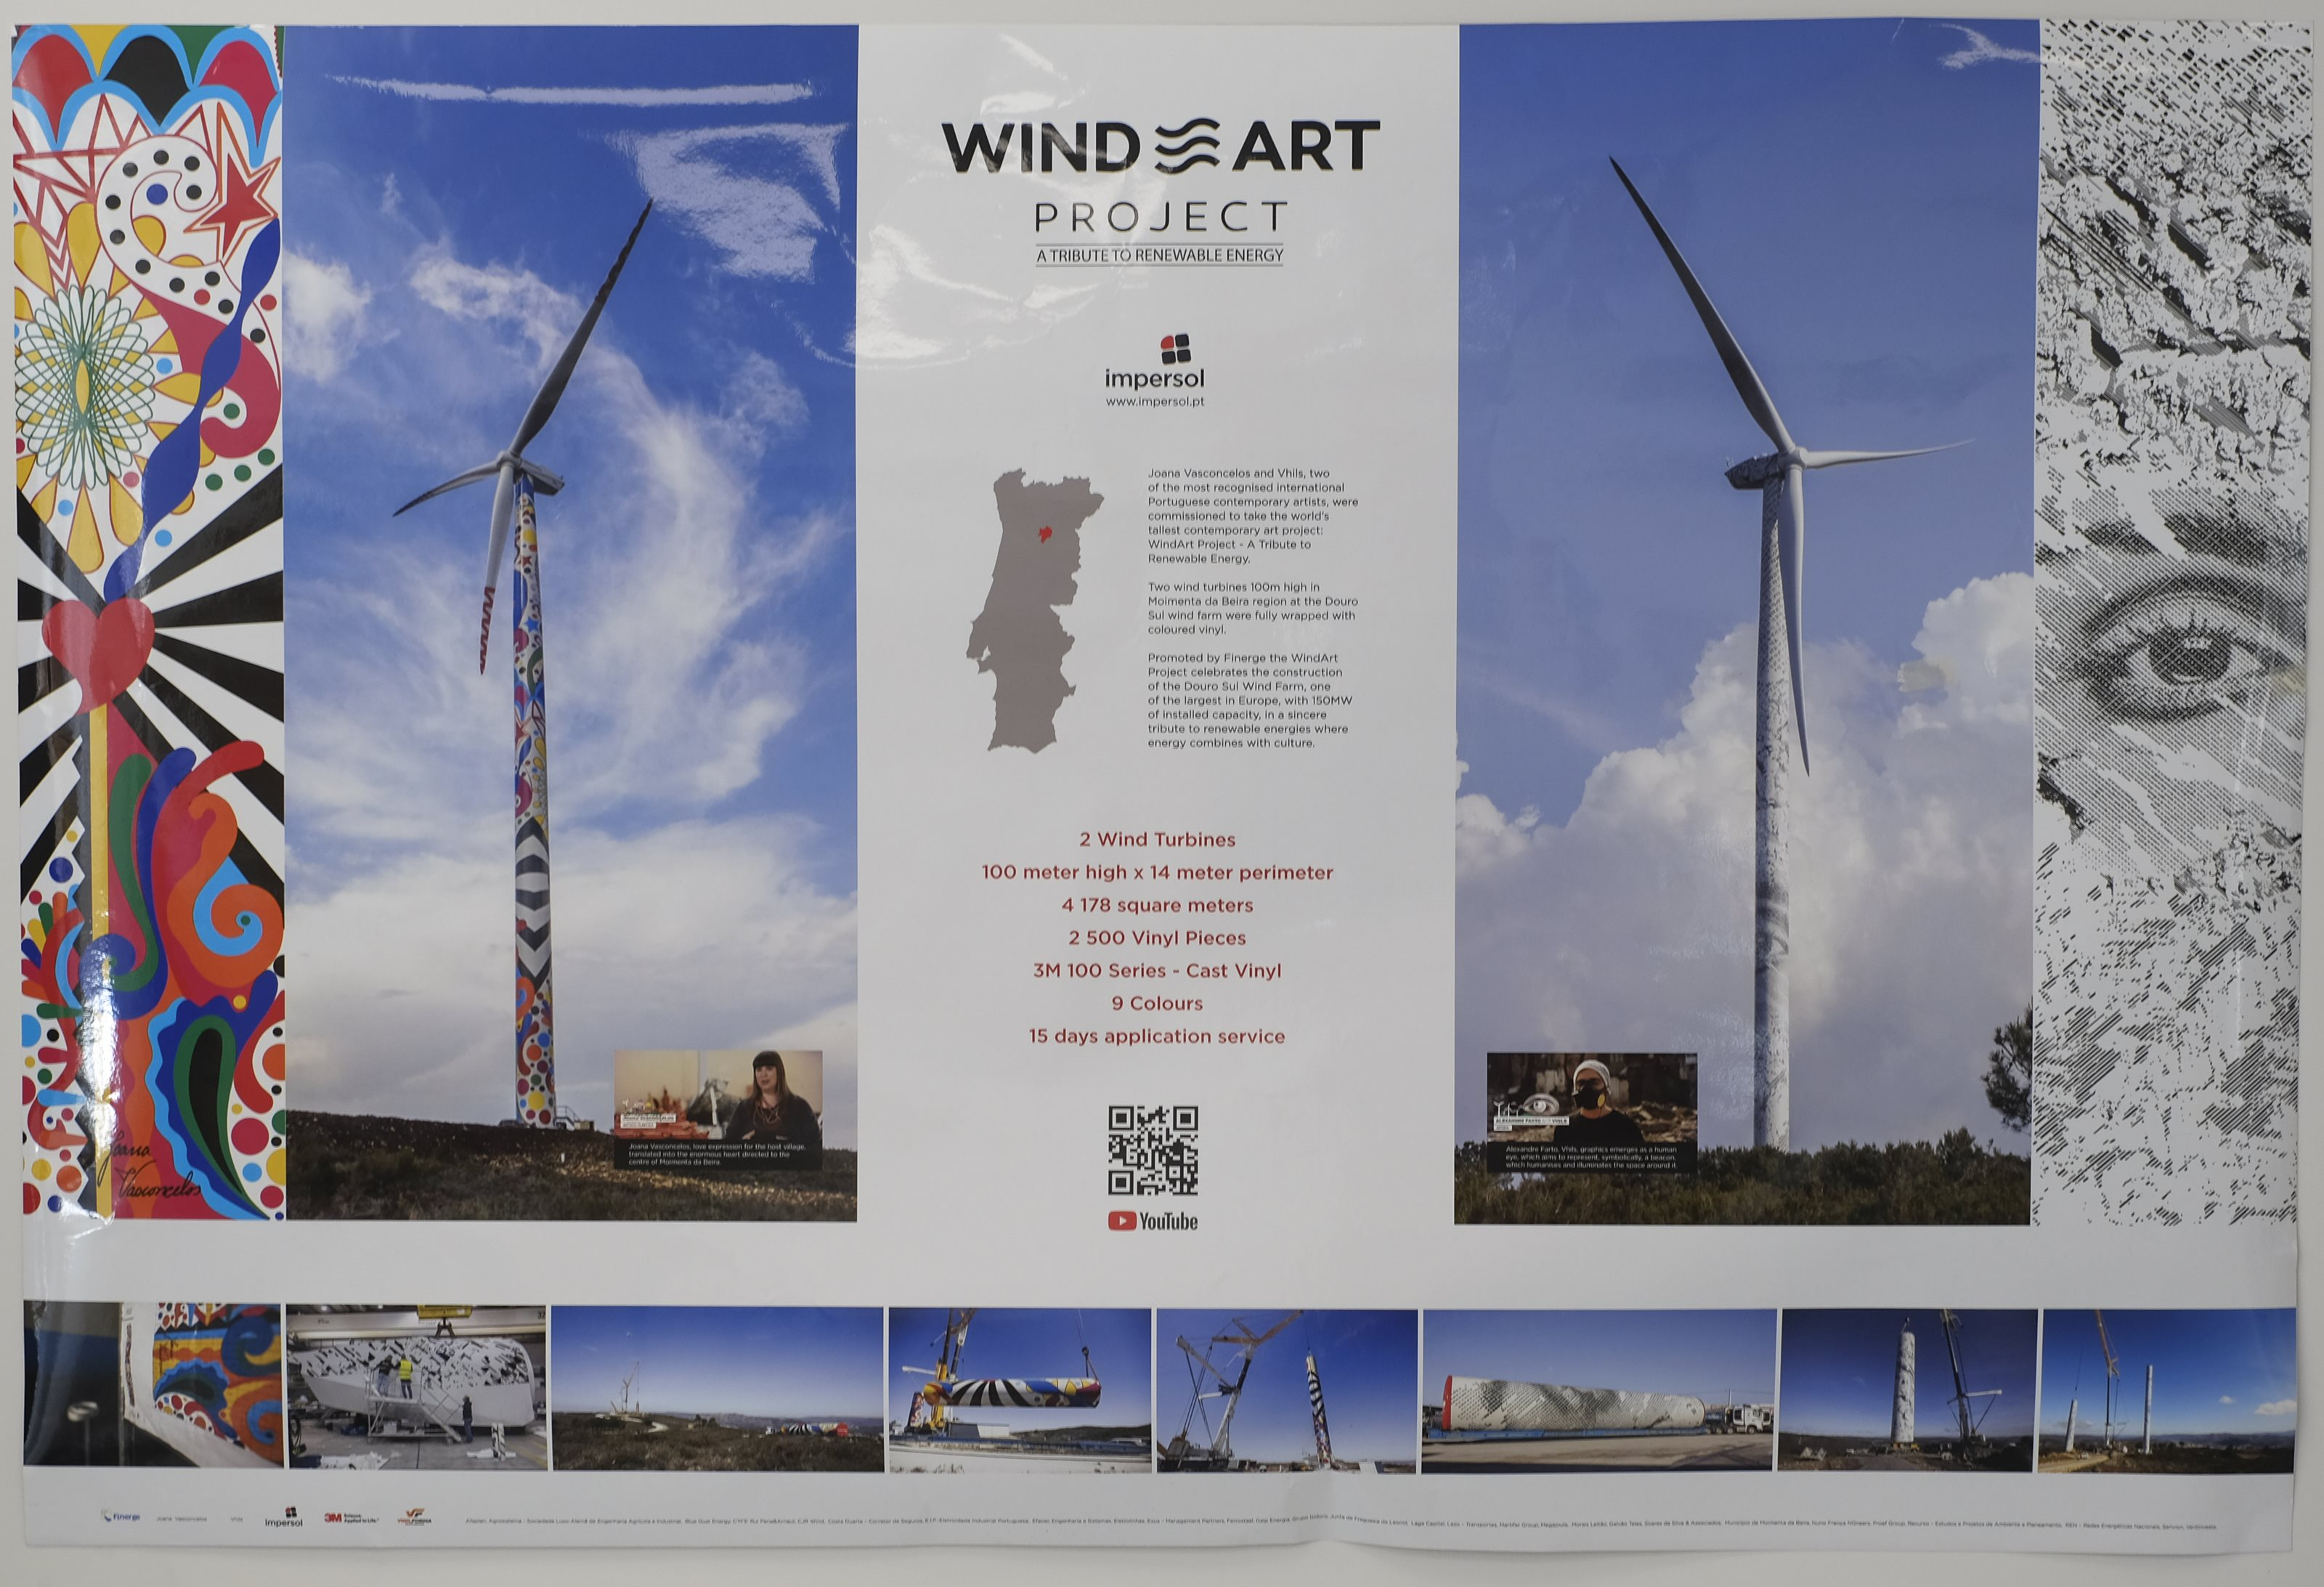 WINDART PROJECT - A TRIBUTE TO RENEWABLE ENERGY